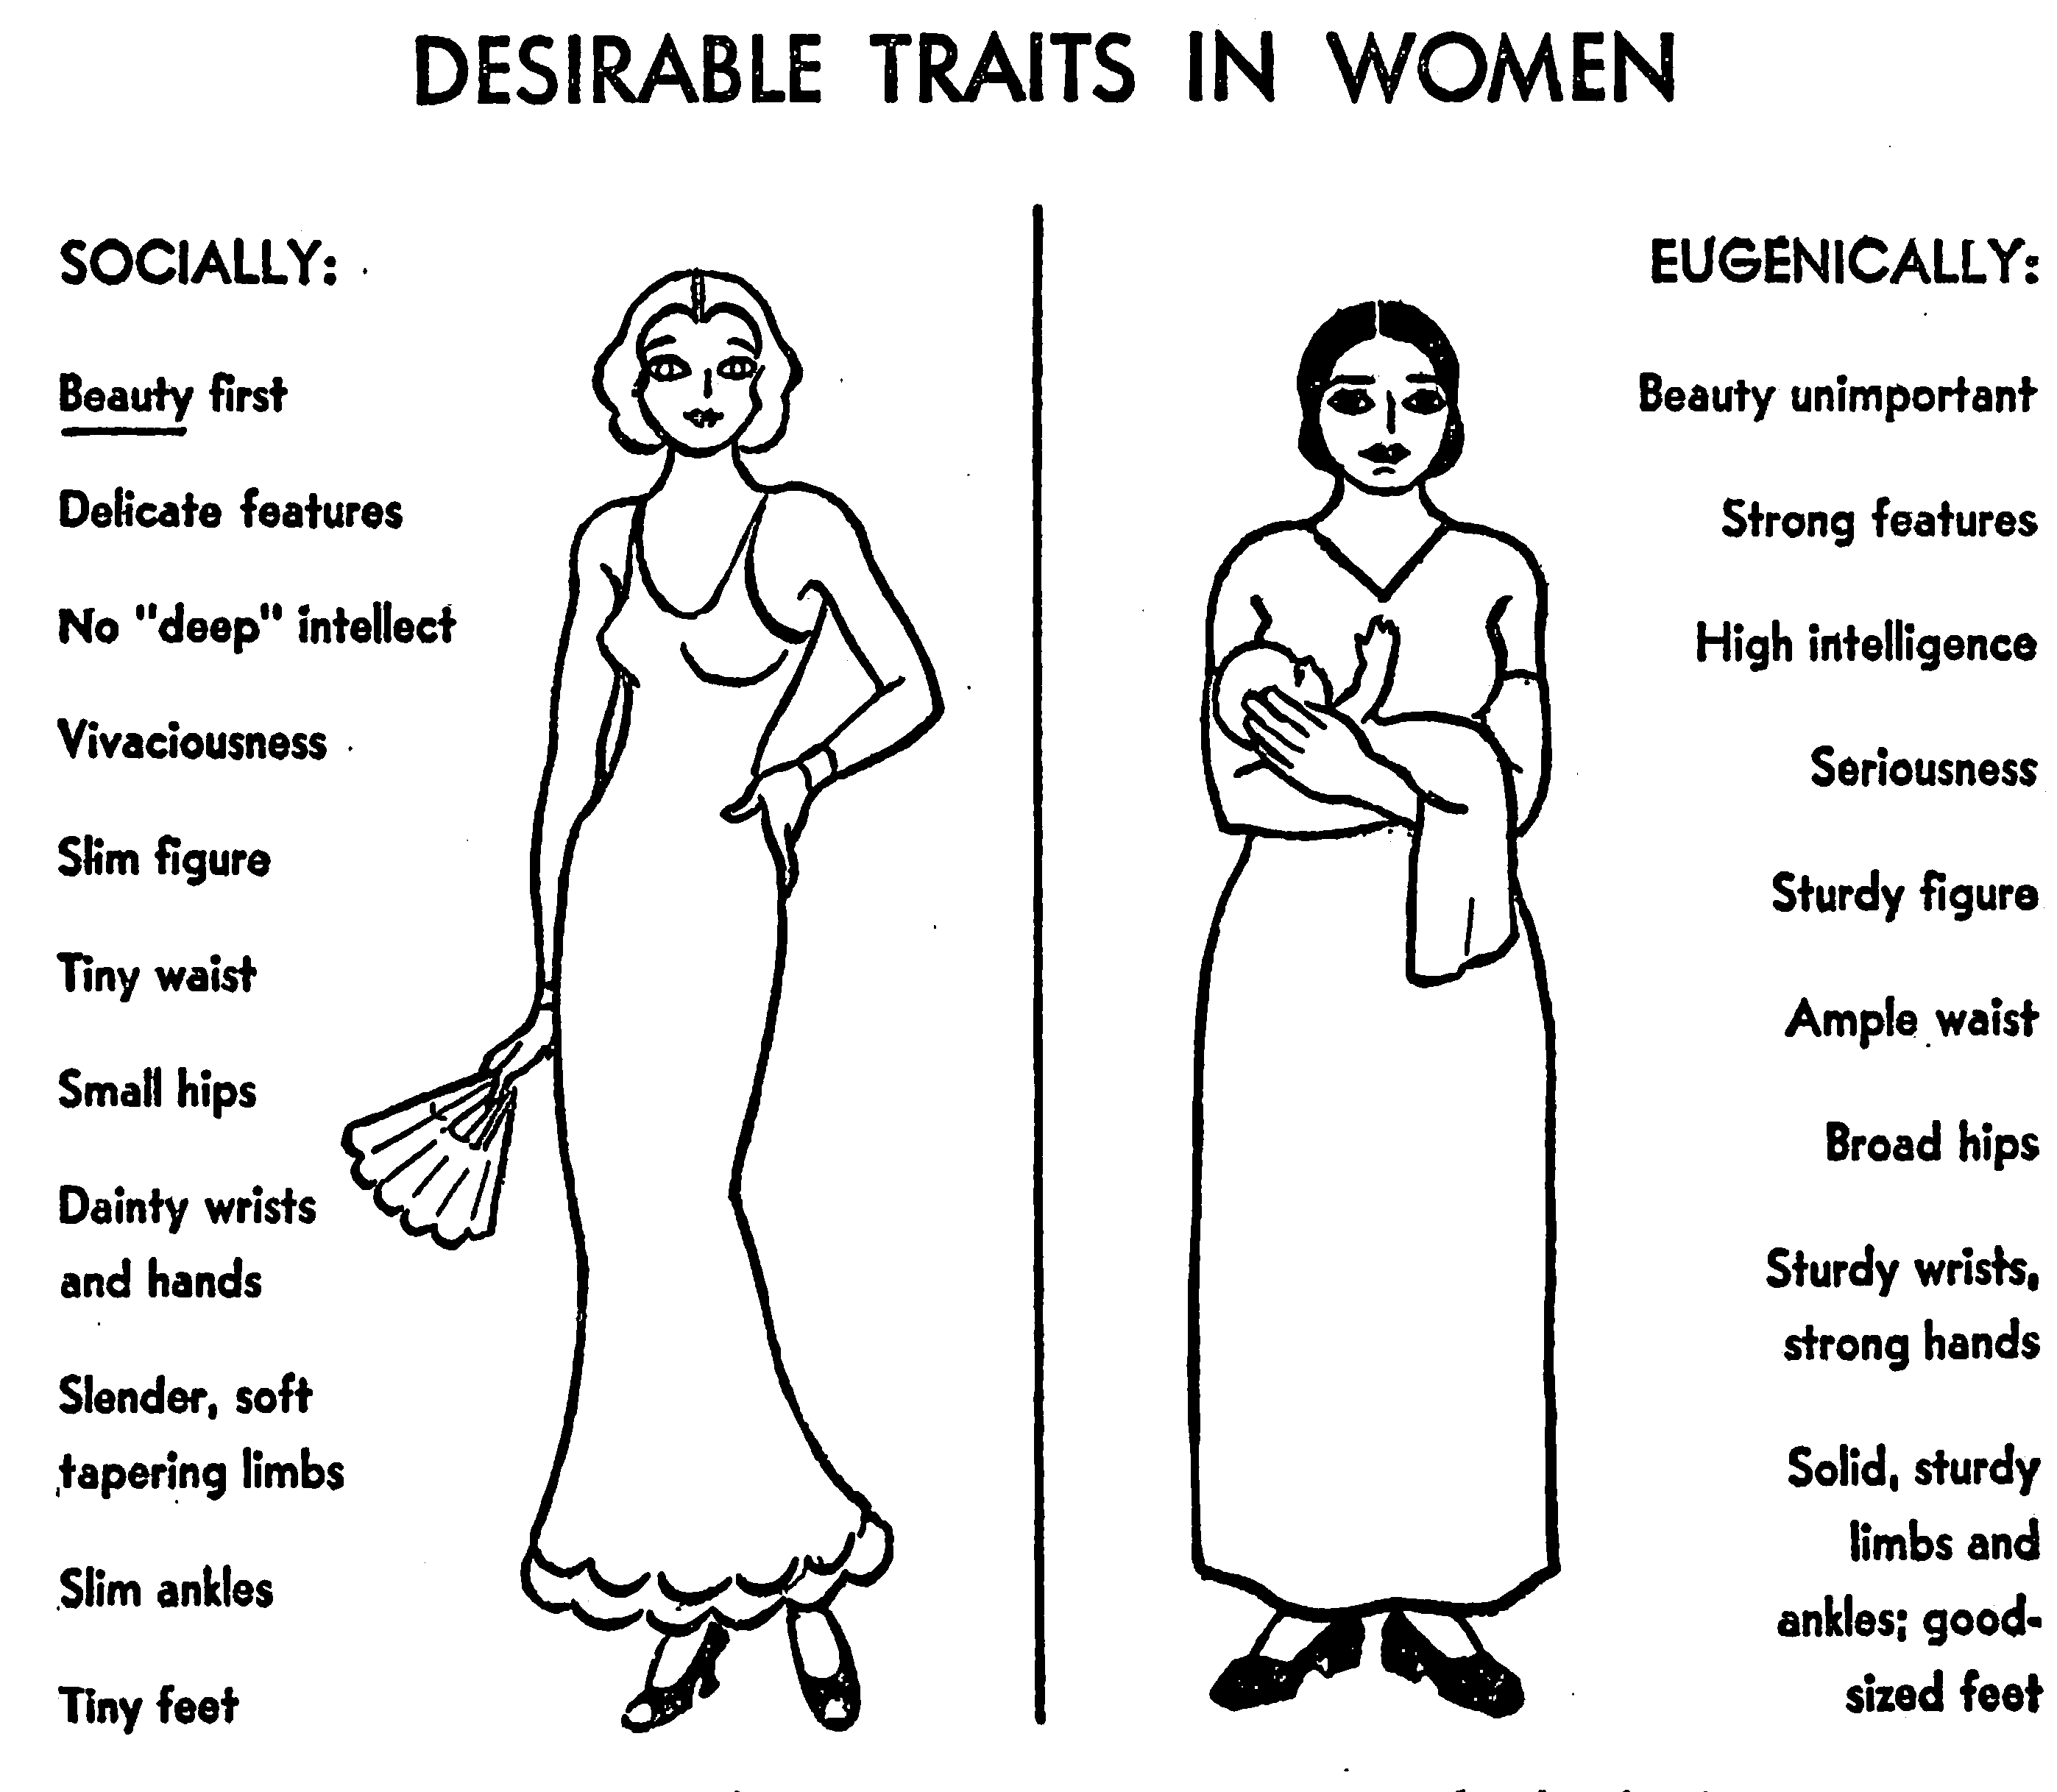 http://www.the-savoisien.com/blog/public/img9/Desirable_Traits_in_Women.png